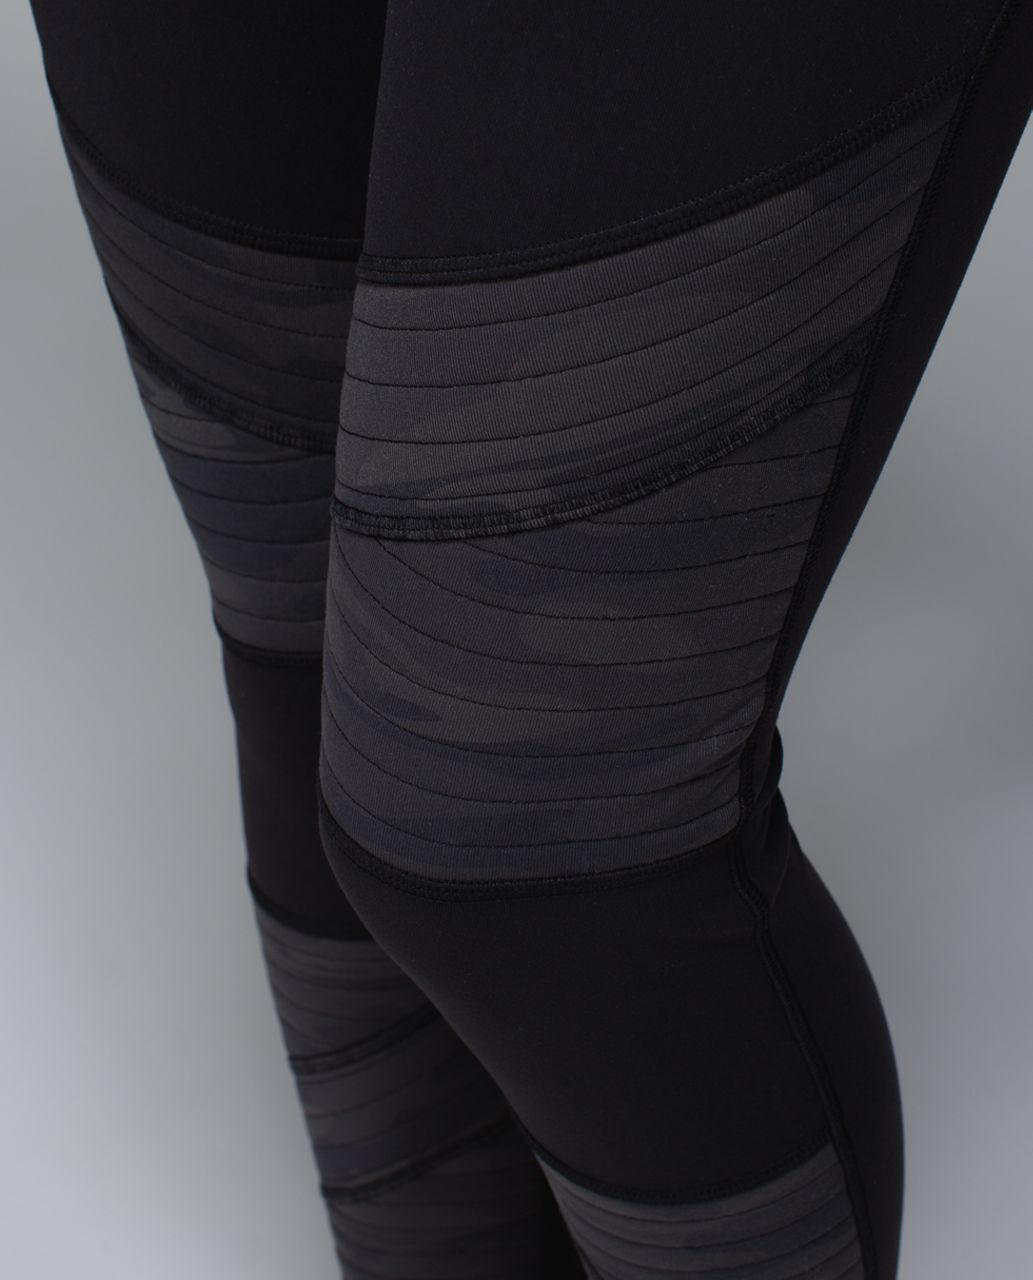 Lululemon Rocket Tight - Black /  Retro Camo